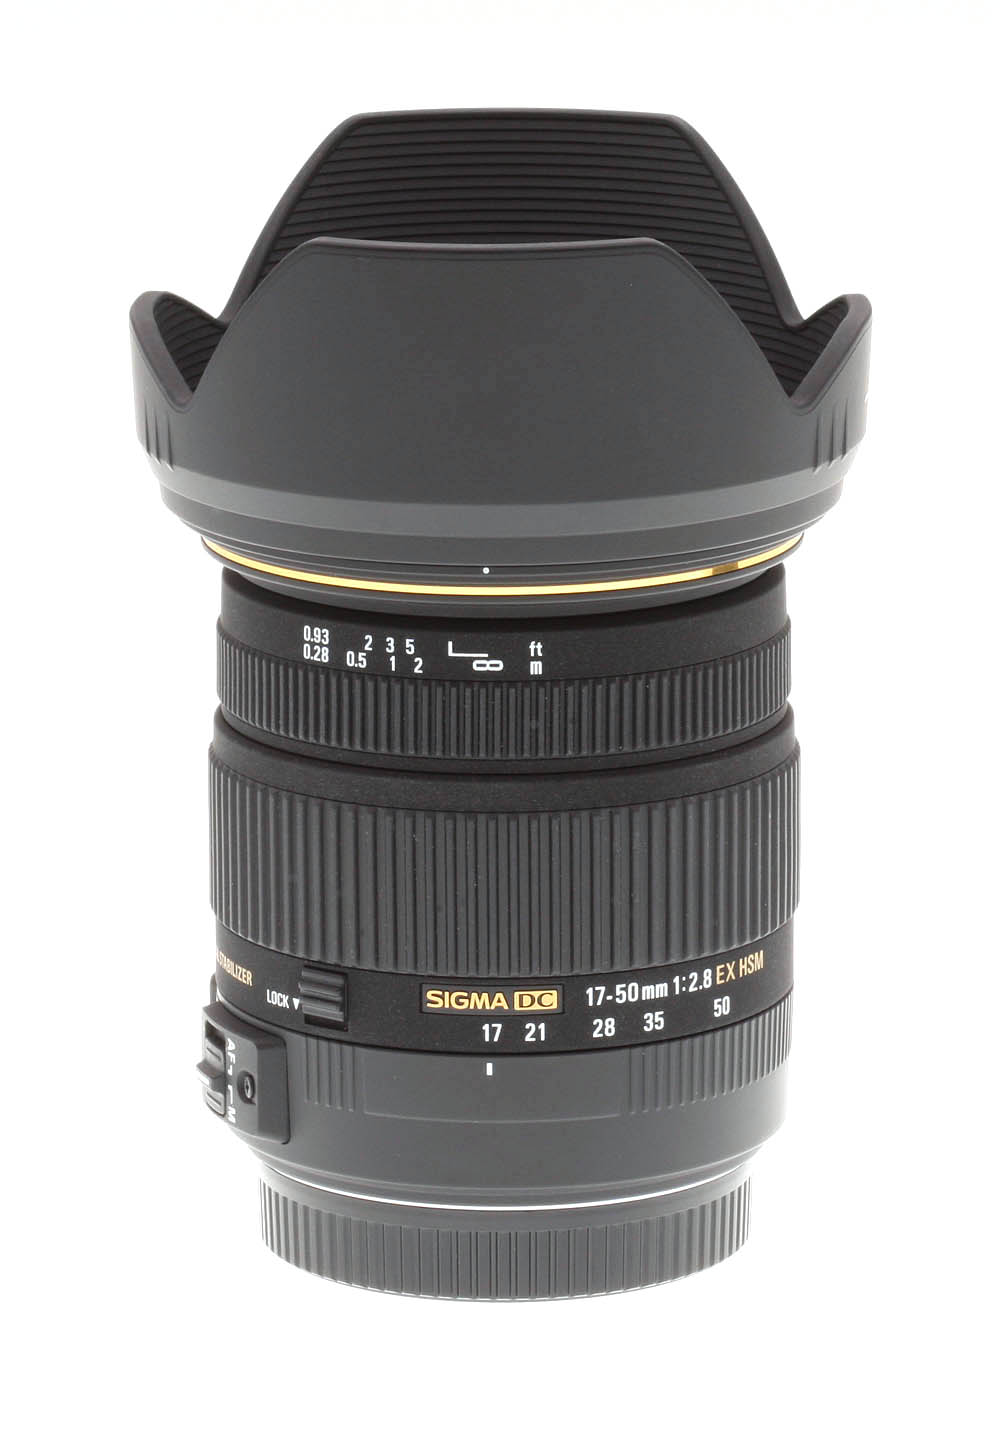 Nikon Af 50mm F14d Sigma 17 F 28 Ex Dc Os Hsm Review Product Photos